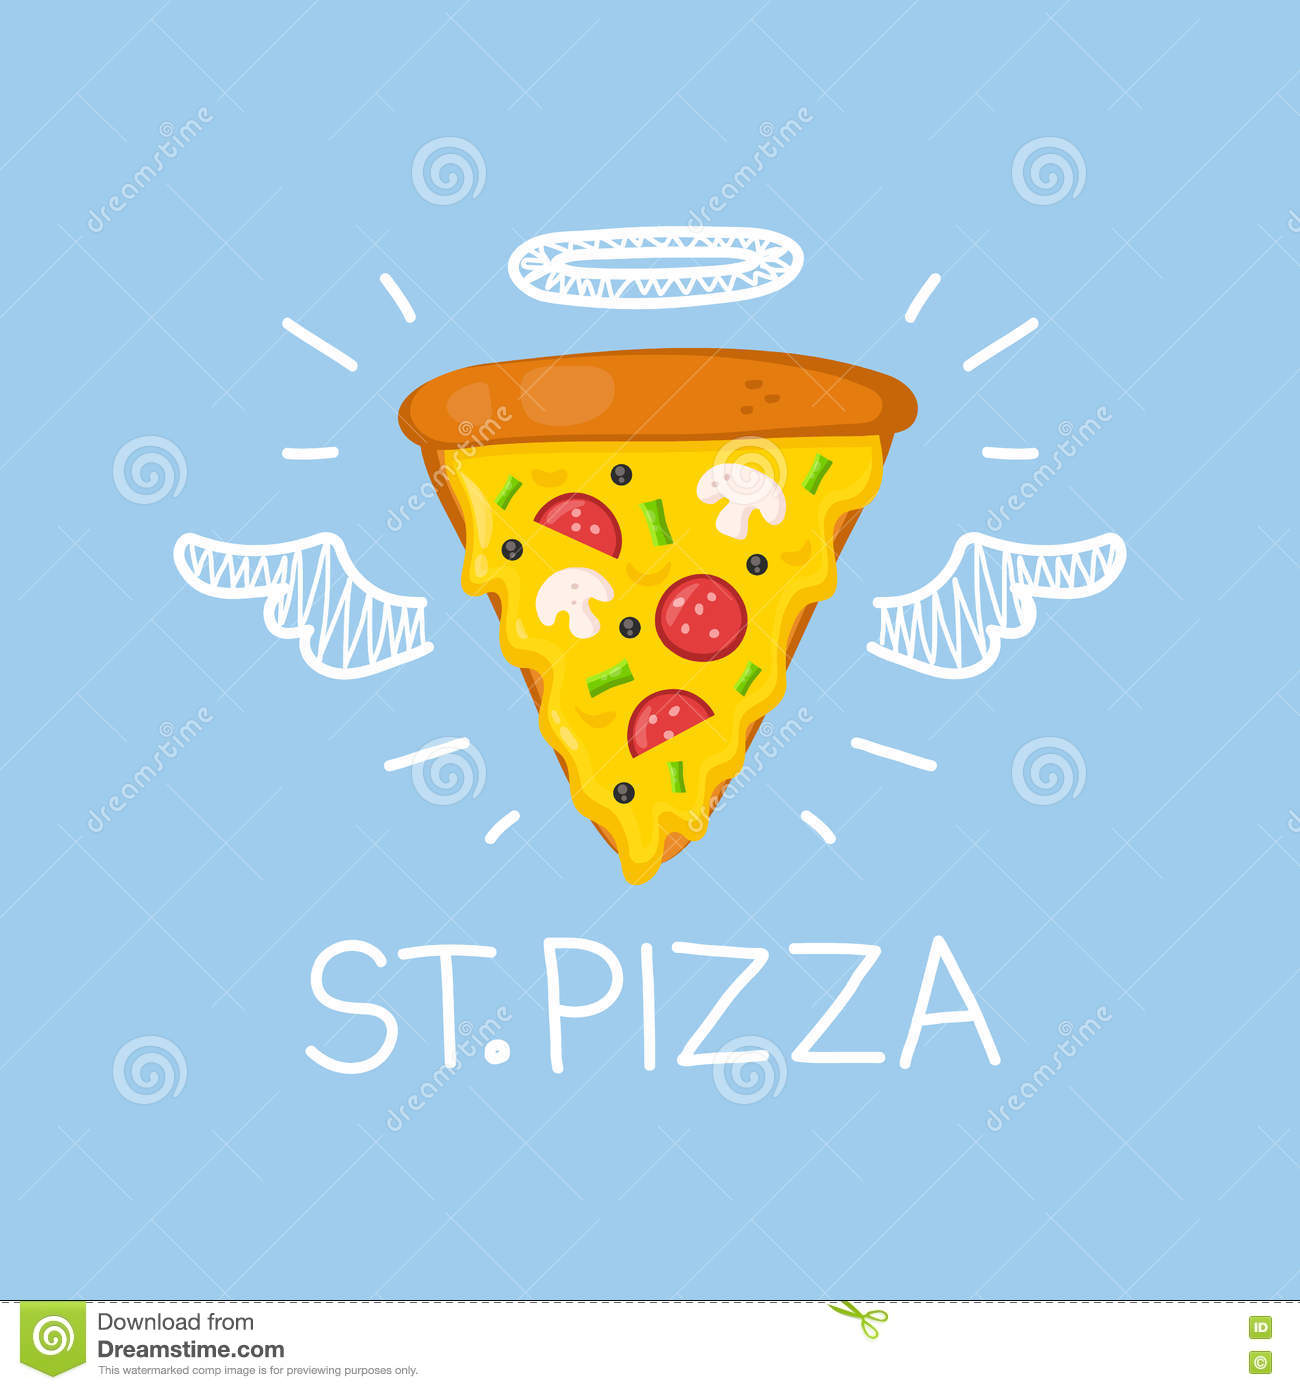 Pizza concept  St. Pizza  with angel halo and wings. Flat and doodle vector illustration